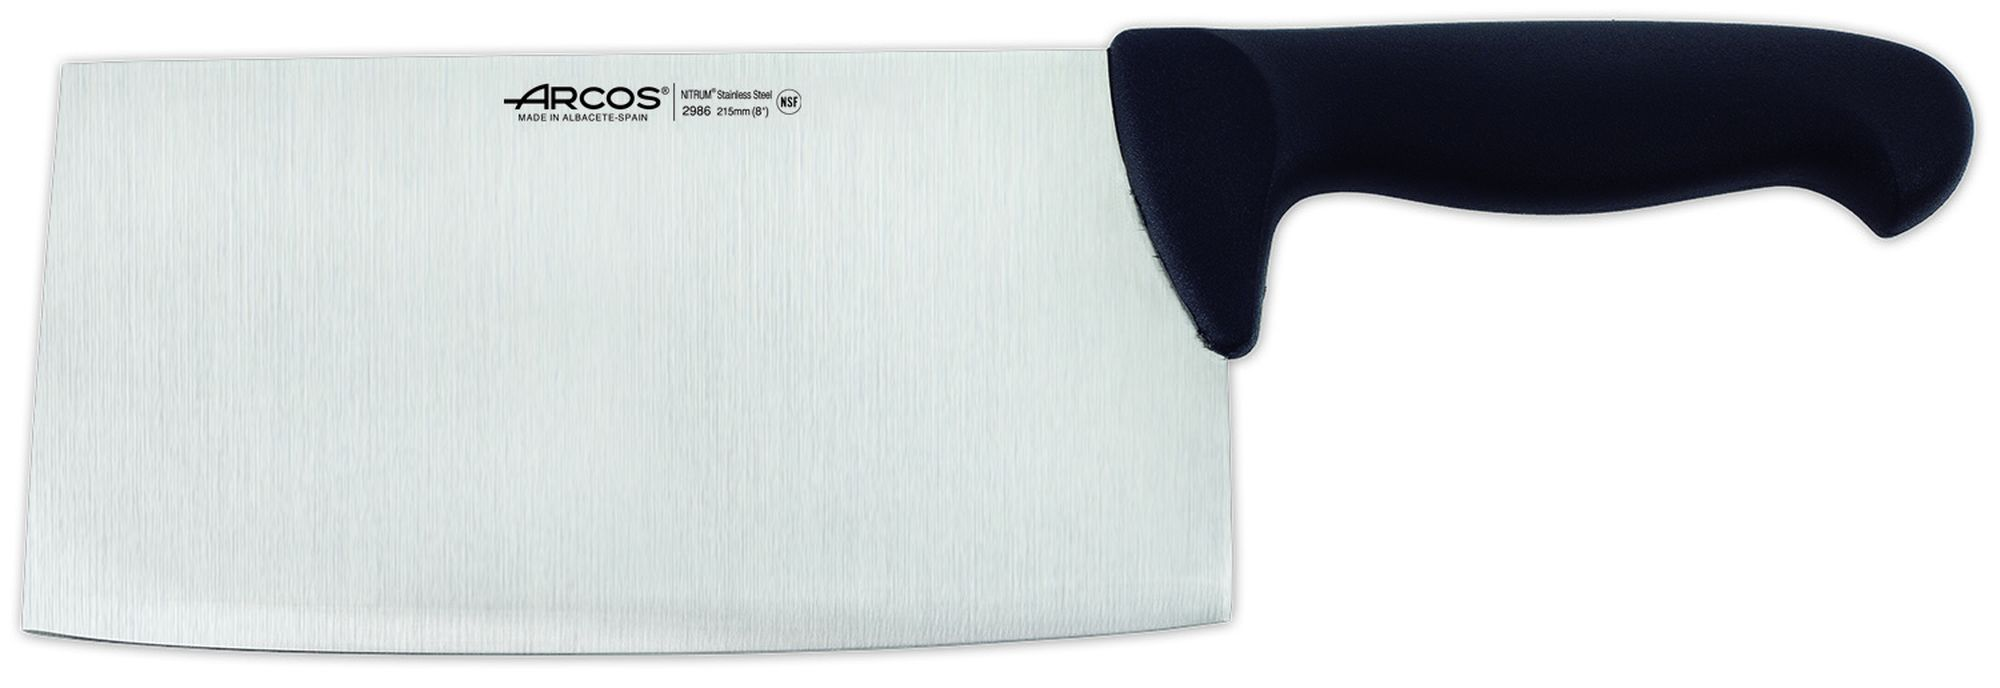 Cleaver Arcos ref.: 298625